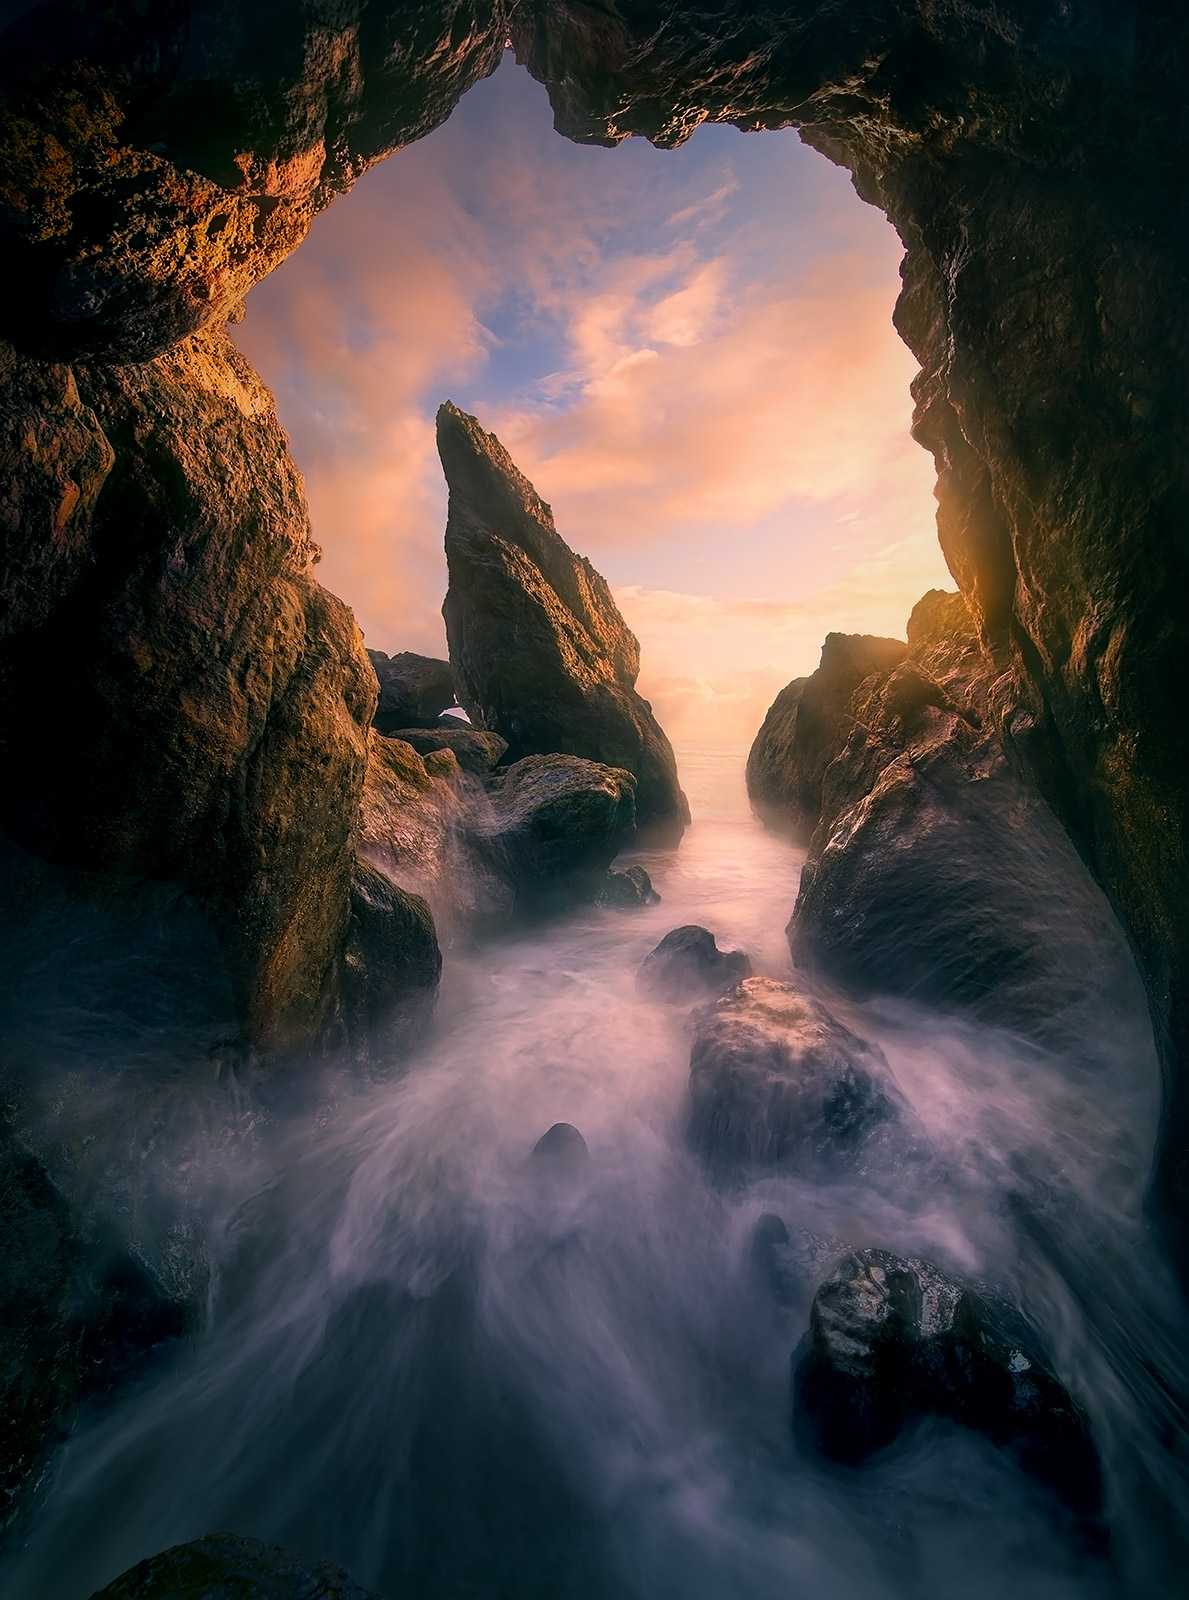 Sunset light and waves inside an ocean cave in Washington.